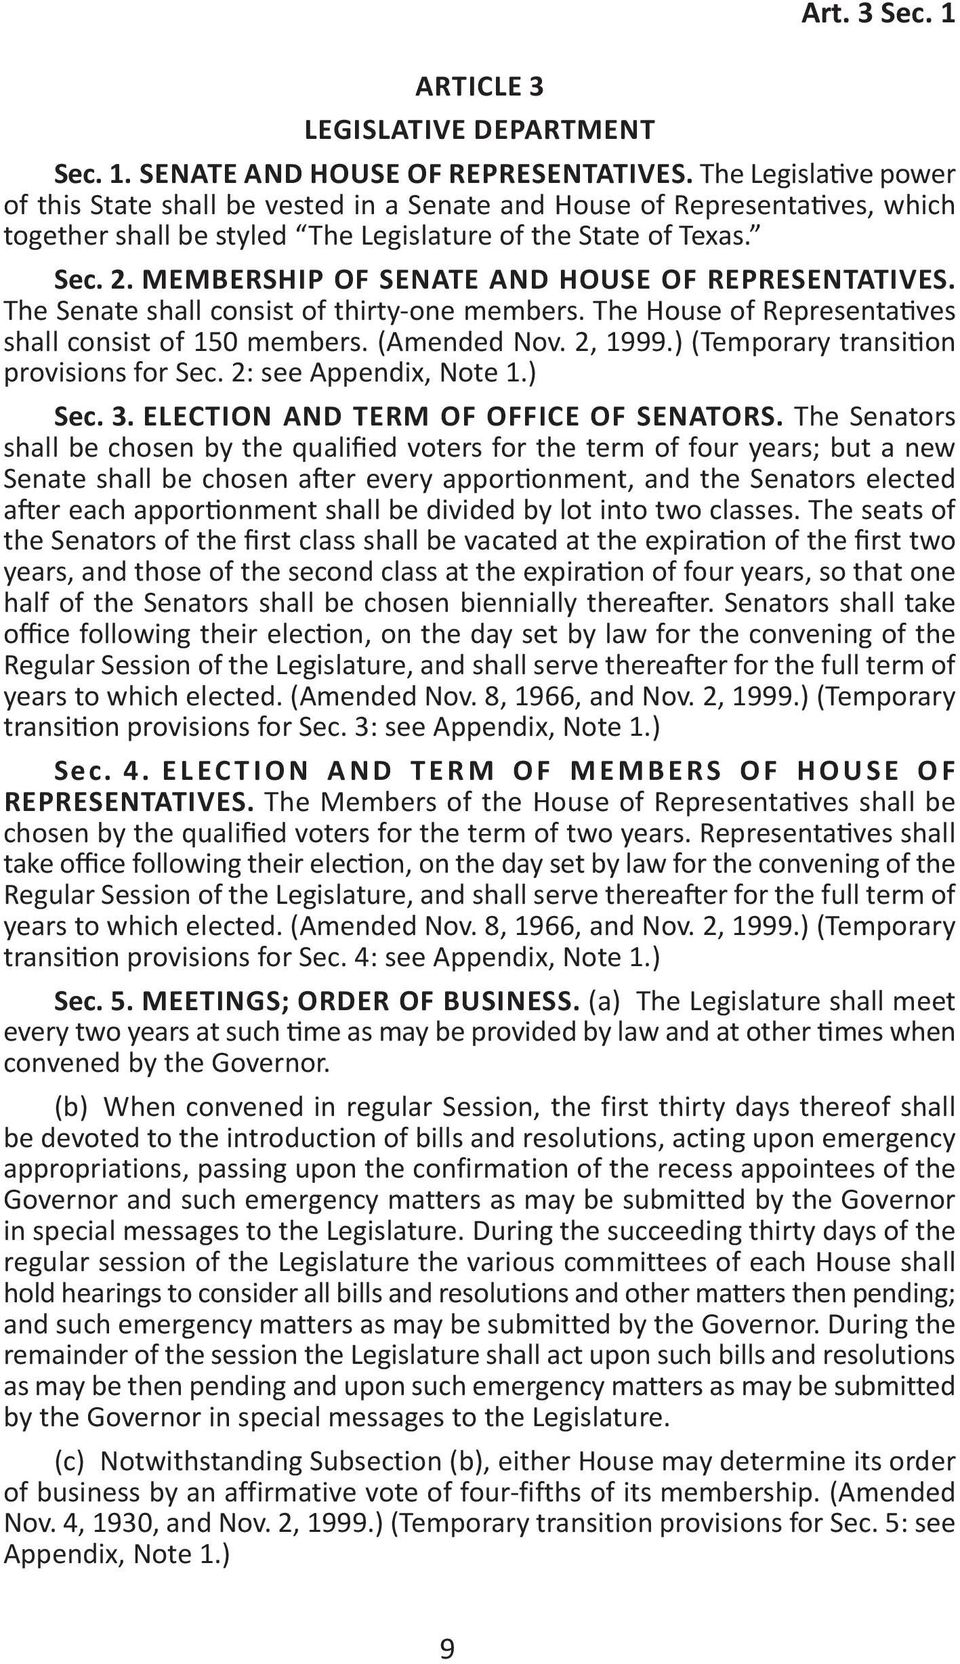 MEMBERSHIP OF SENATE AND HOUSE OF REPRESENTATIVES. The Senate shall consist of thirty one members. The House of Representatives shall consist of 150 members. (Amended Nov. 2, 1999.